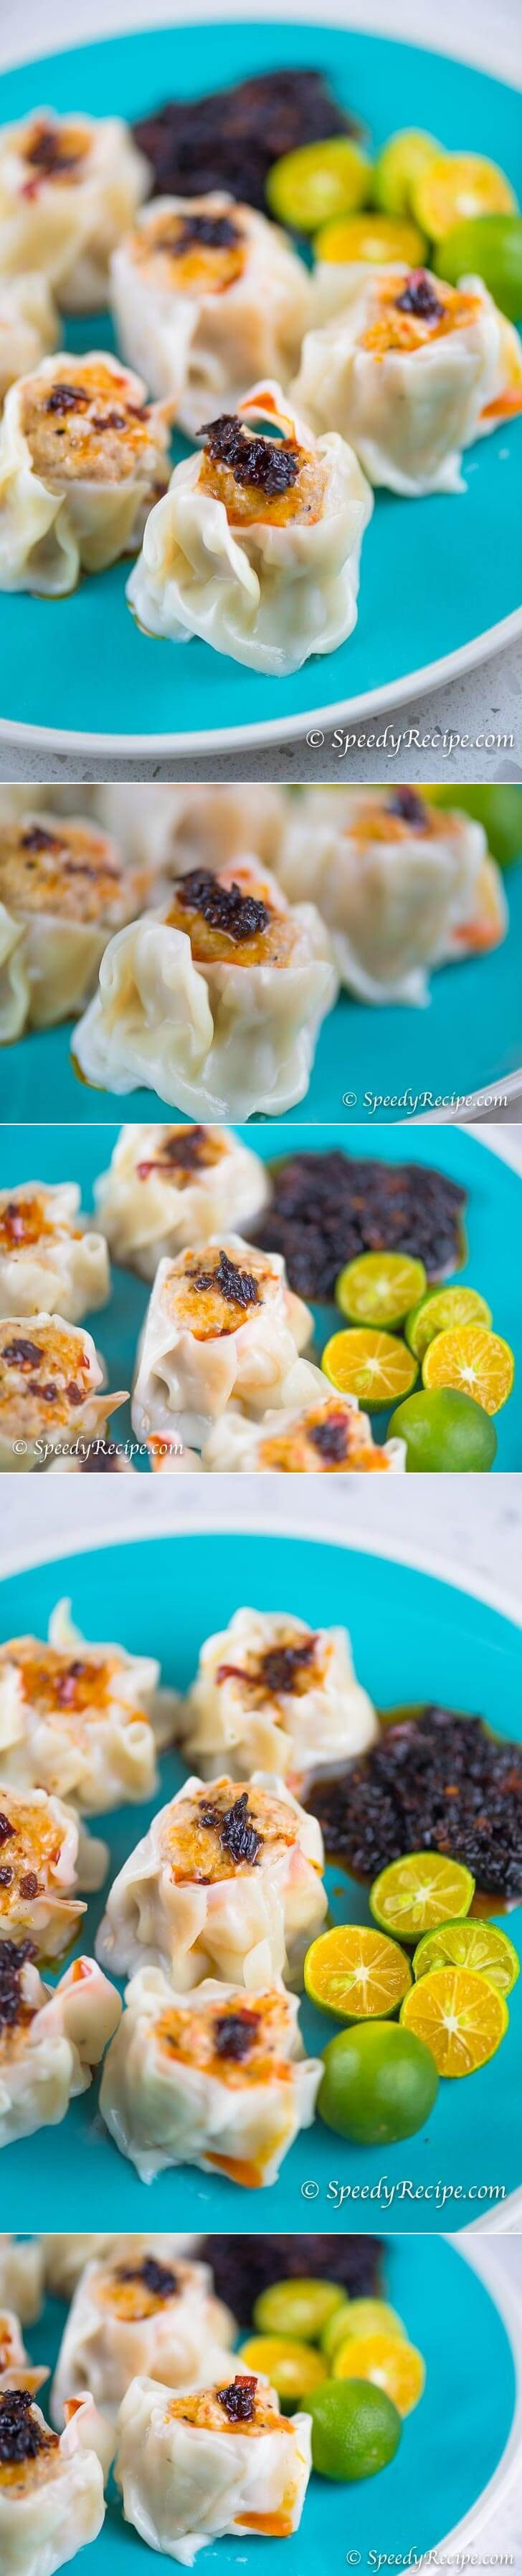 324 best Dim Sum Recipes images on Pinterest | Chinese cuisine ...